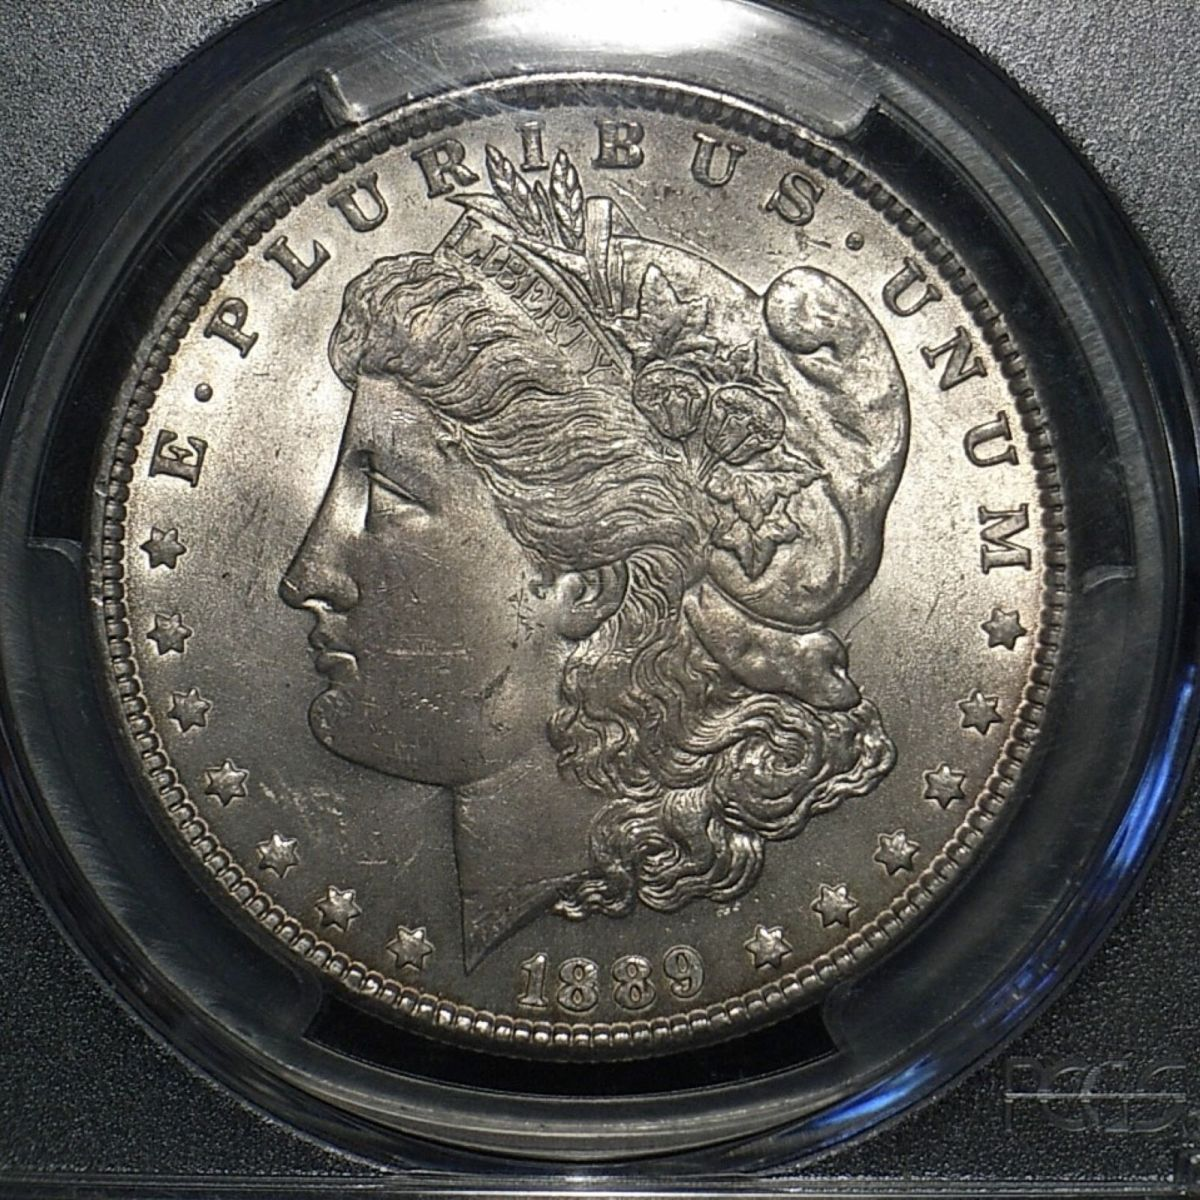 US Morgan Dollar 1889-P close up showing good detail and lustre on the coin